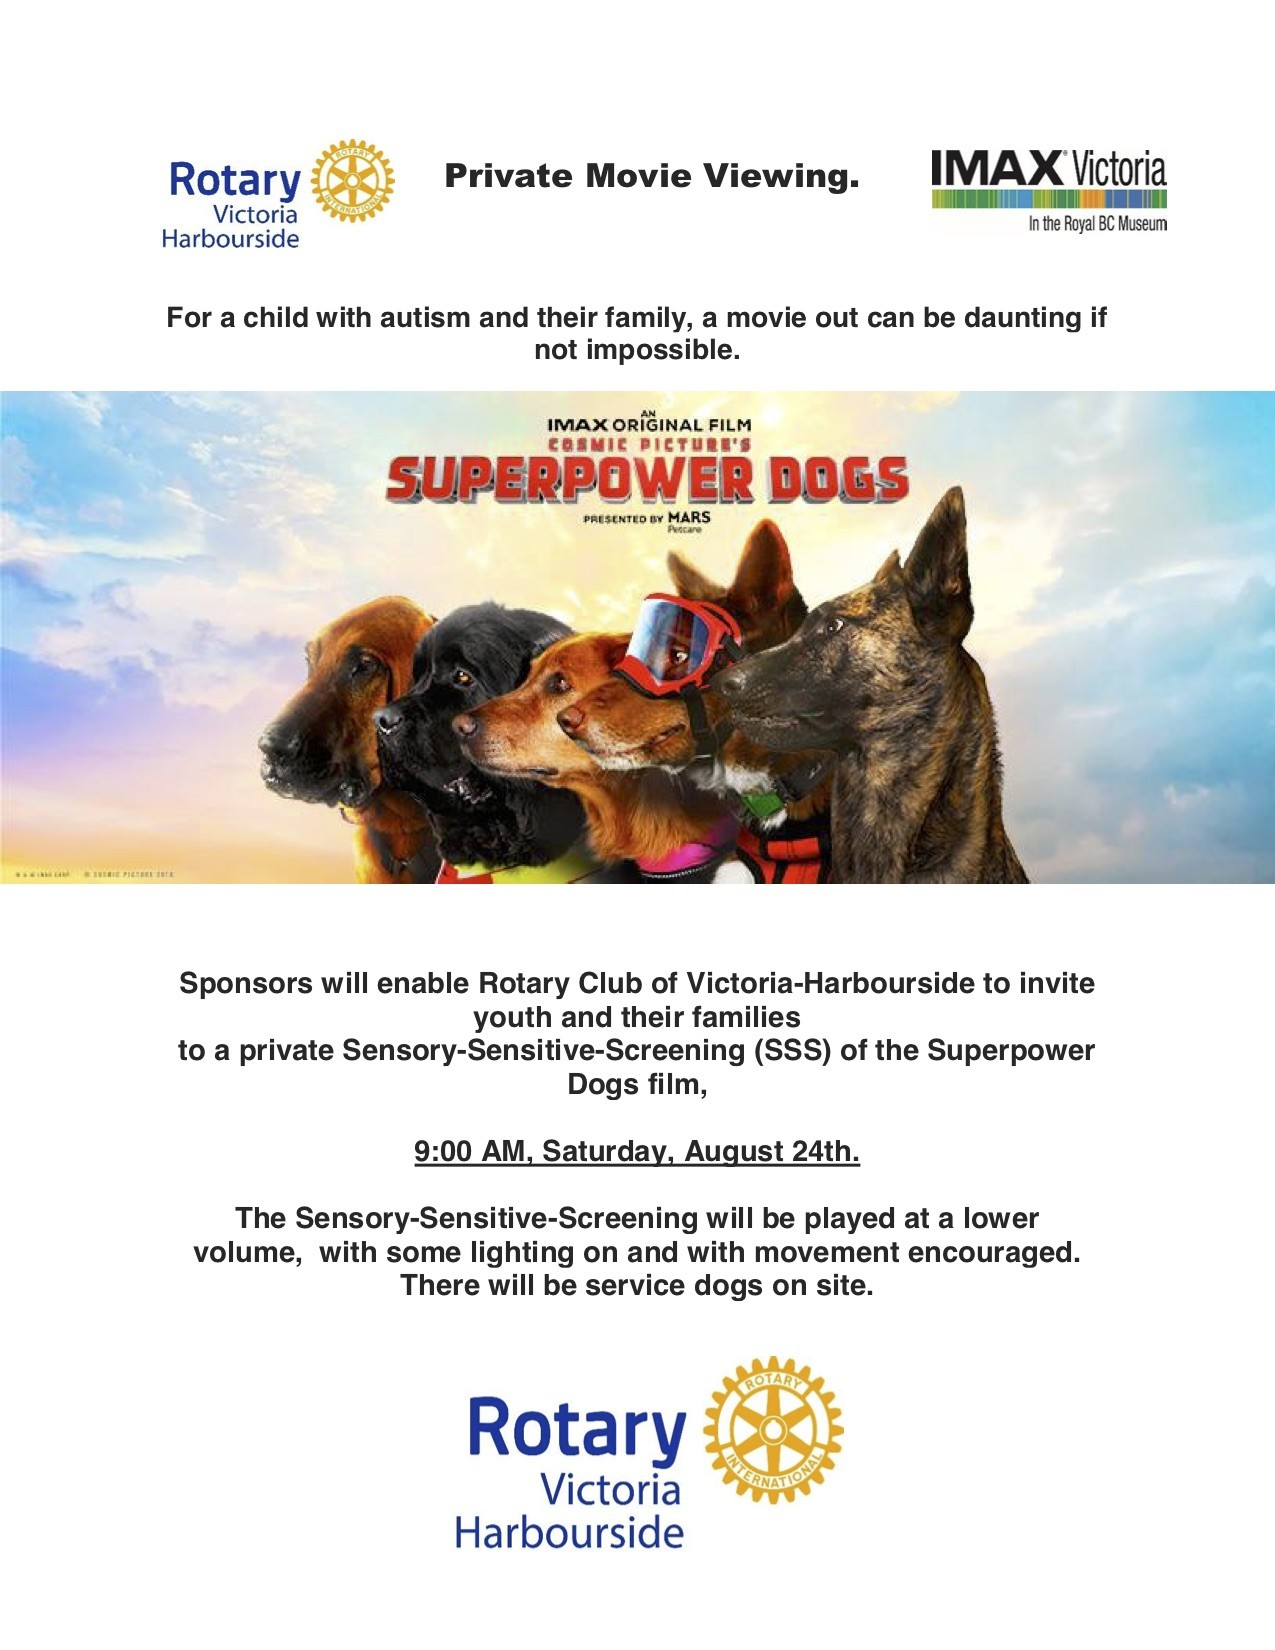 Sensory-Sensitive-Screening of the Superdogs Film at the Victoria IMAX